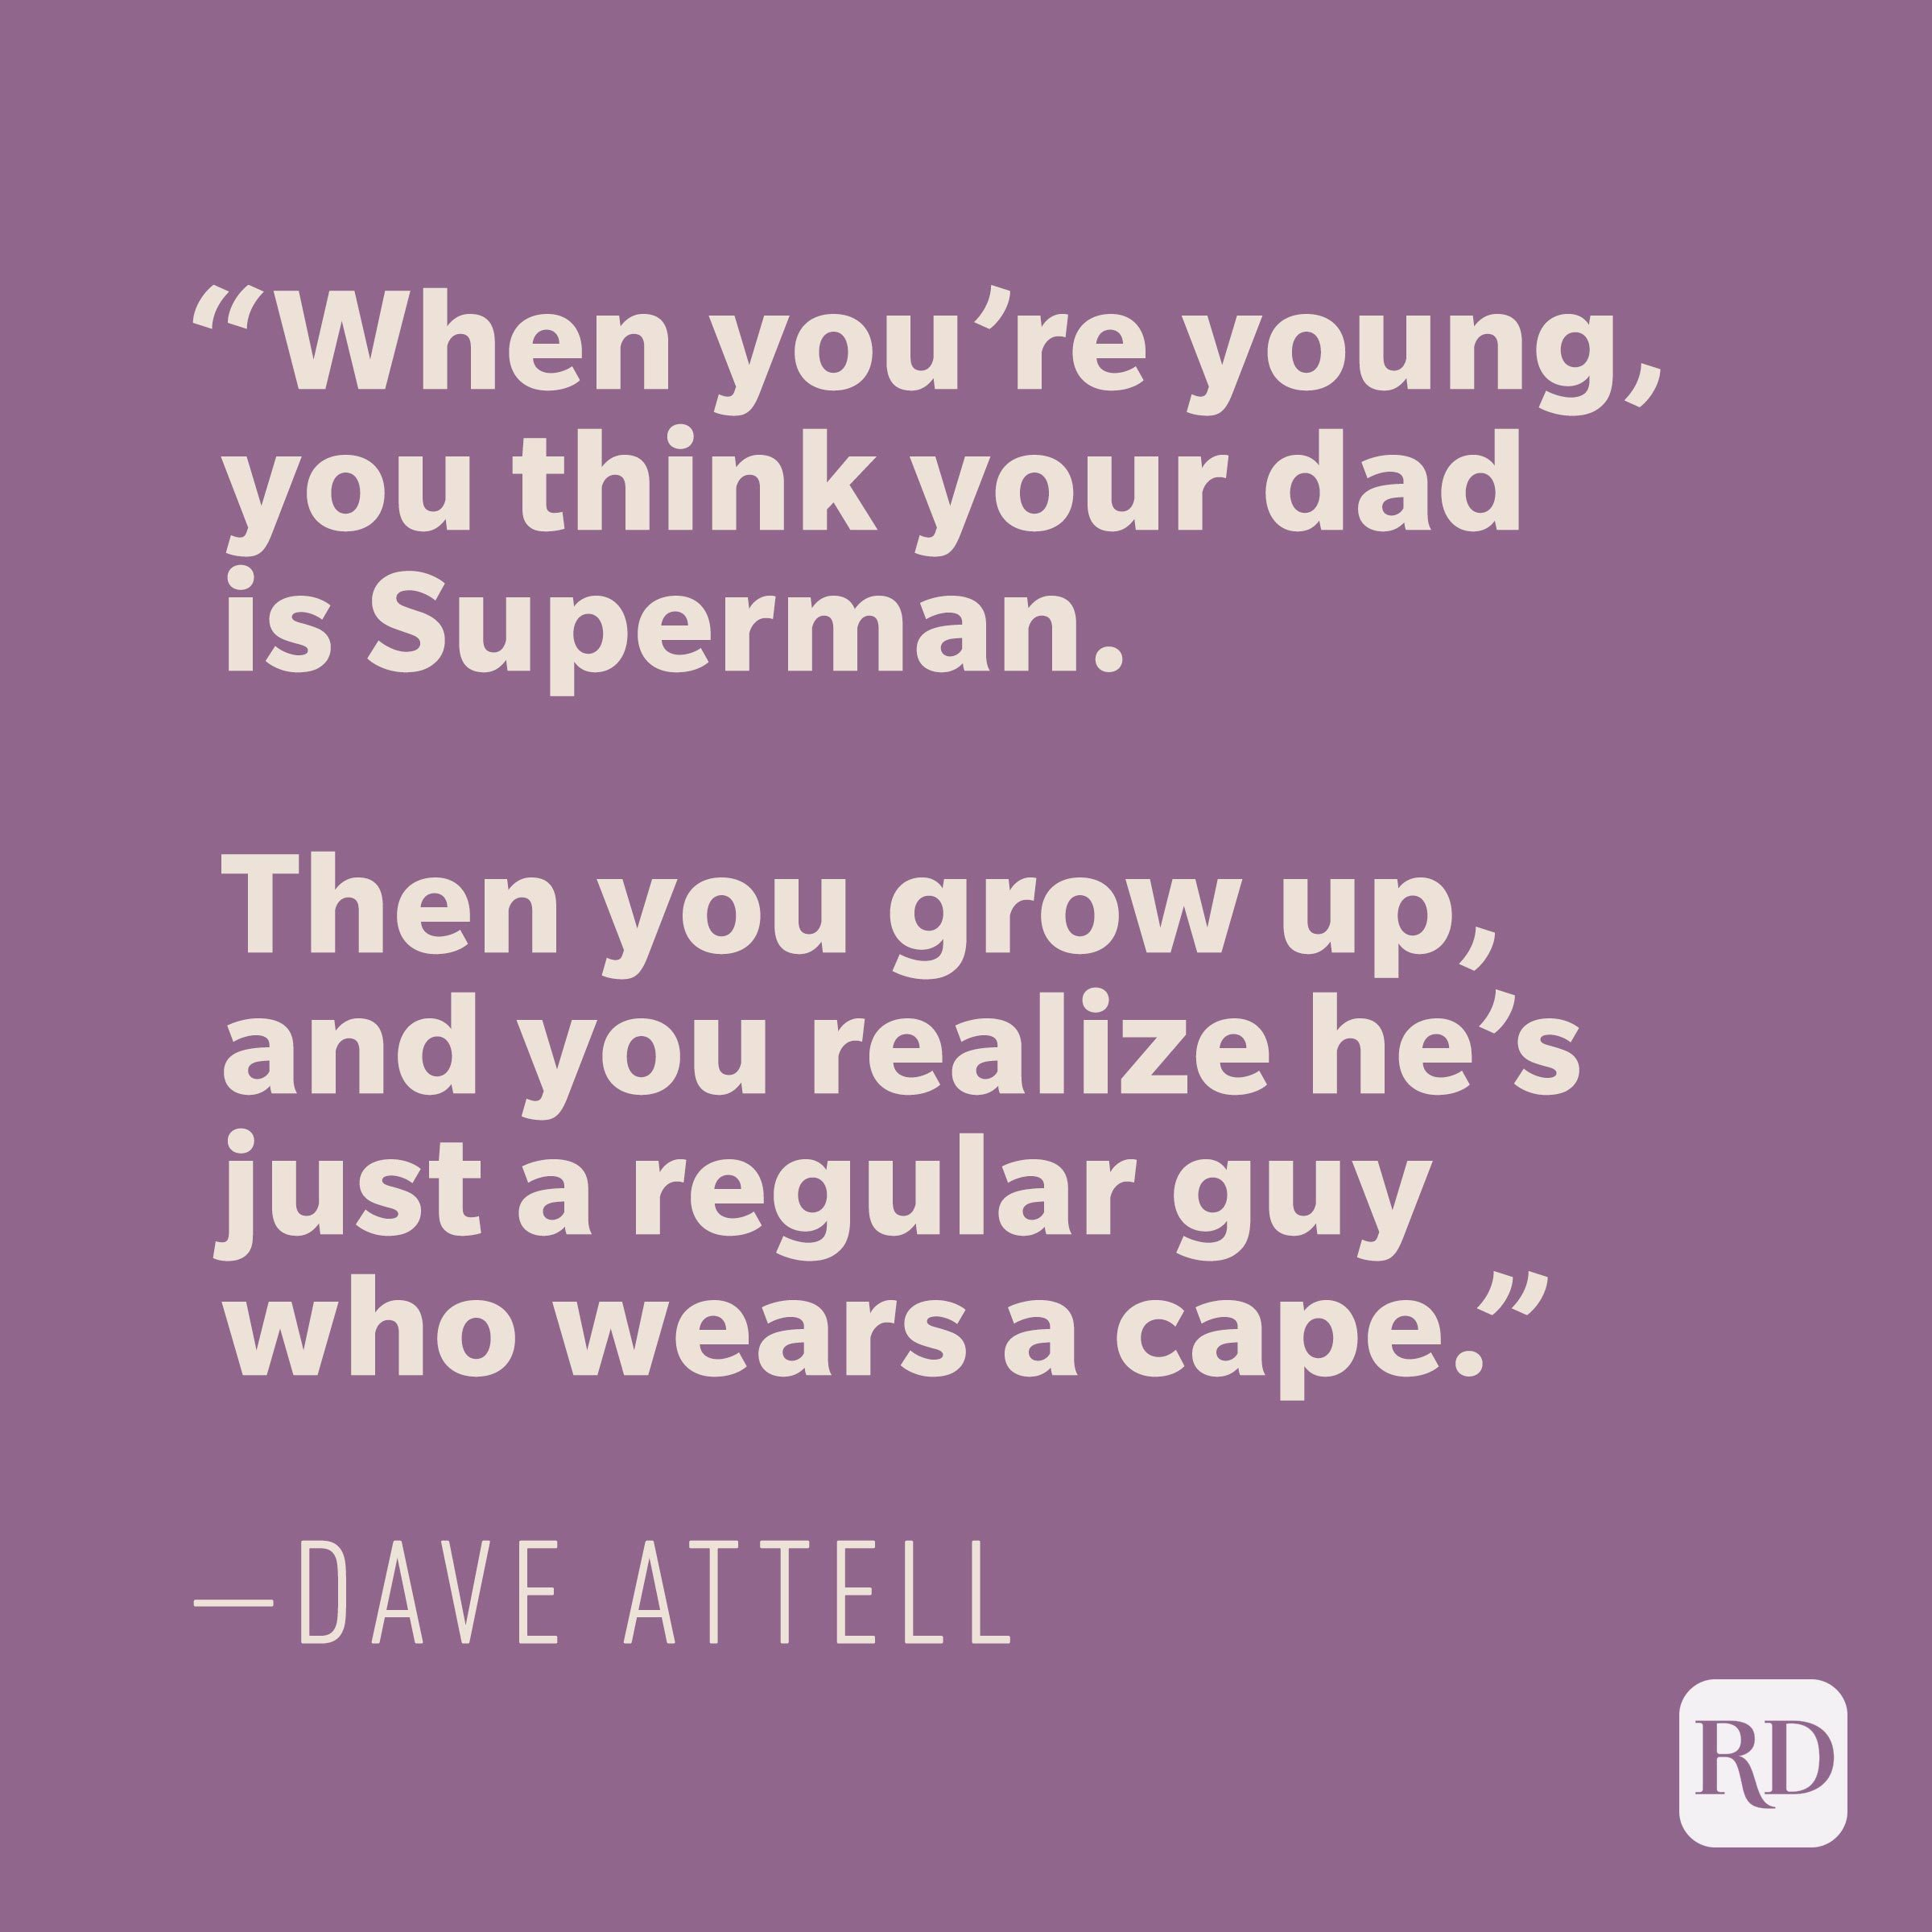 """When you're young, you think your dad is Superman. Then you grow up, and you realize he's just a regular guy who wears a cape."" —DAVE ATTELL"